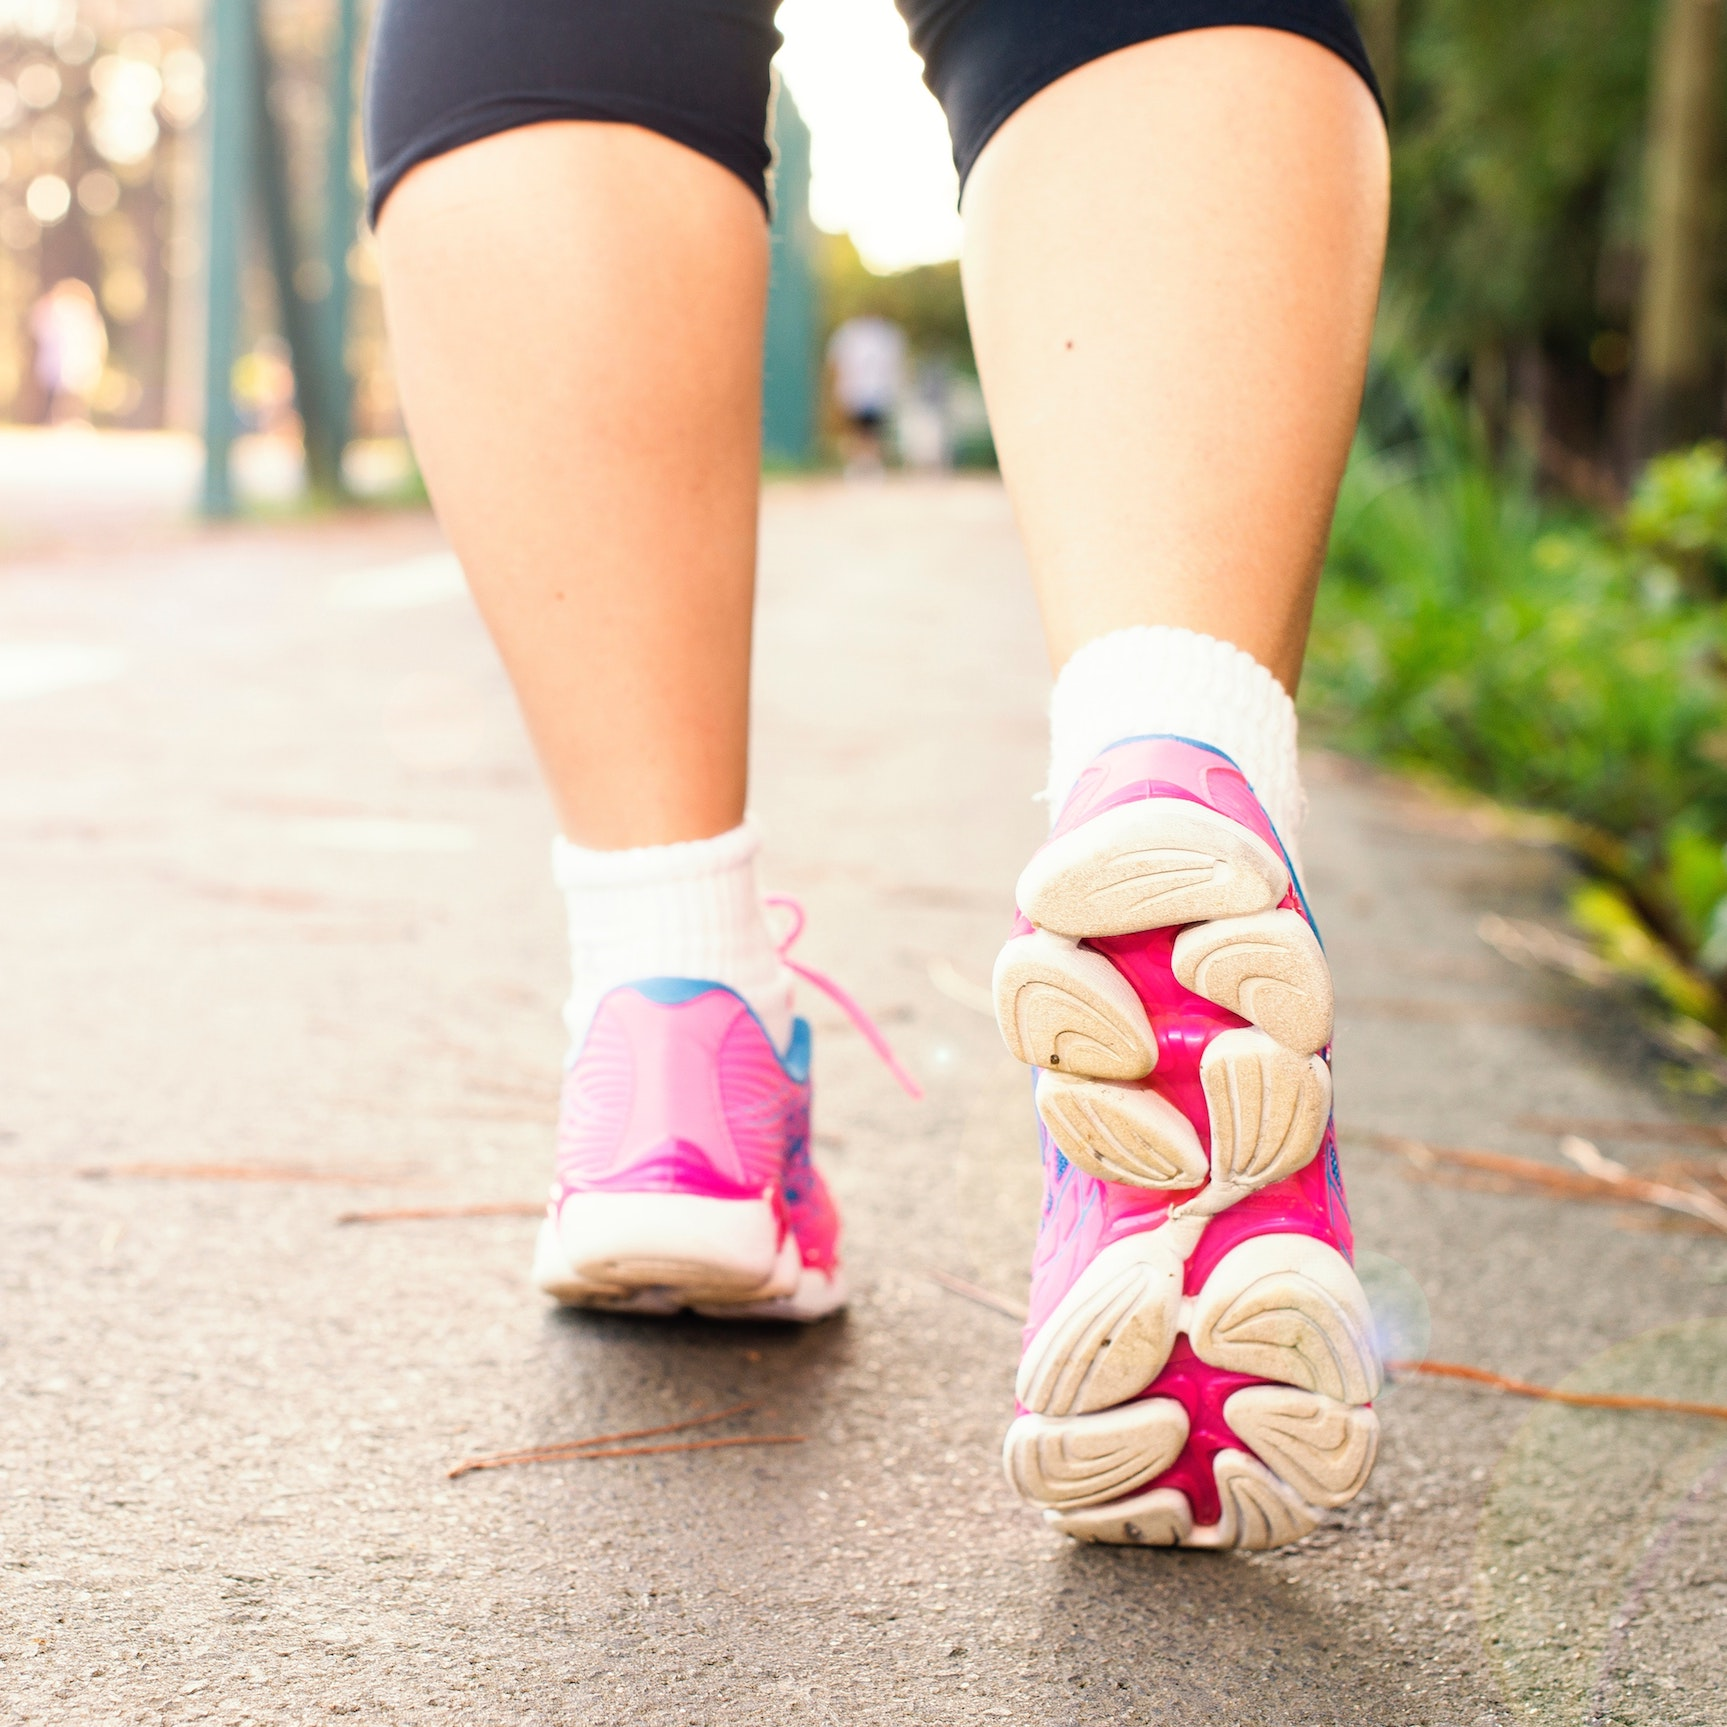 #147 How much stress reduction does your foot need to heal and run?